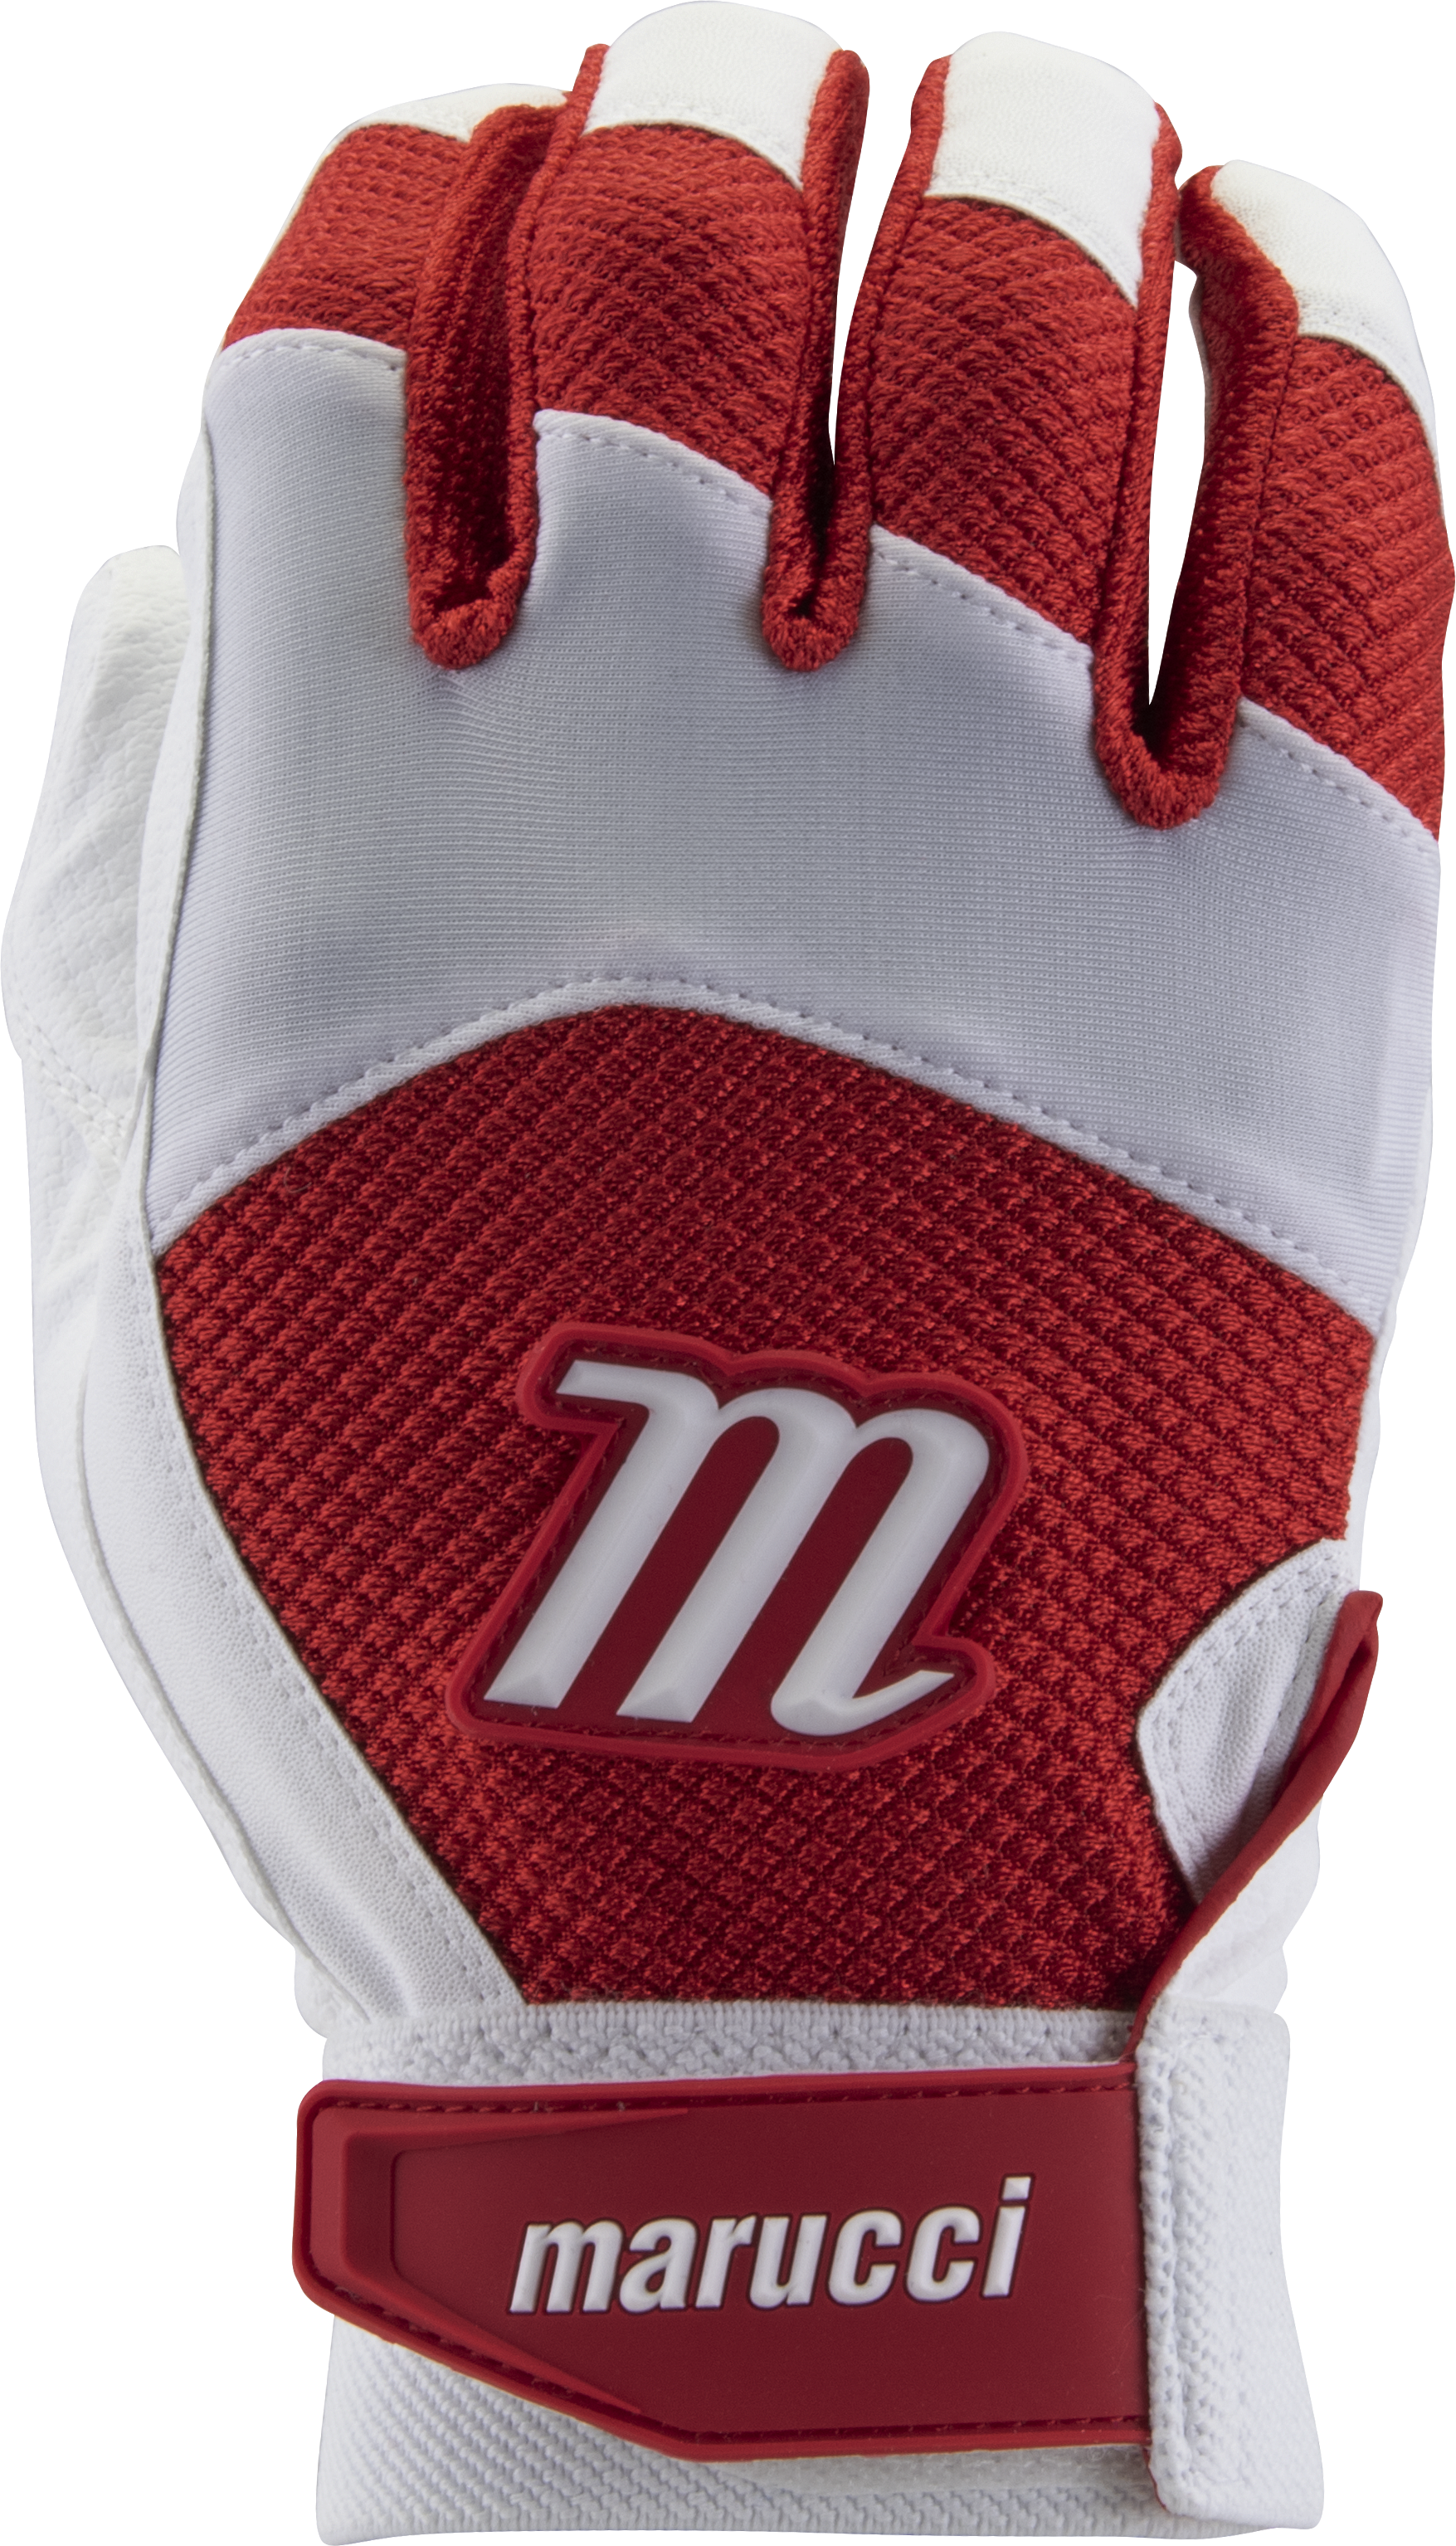 marucci-code-adult-batting-gloves-1-pair-white-red-adult-medium MBGCD-WR-AM  849817096079 2019 Model MBGCD Consistency And Craftsmanship Commitment To Quality And Understanding